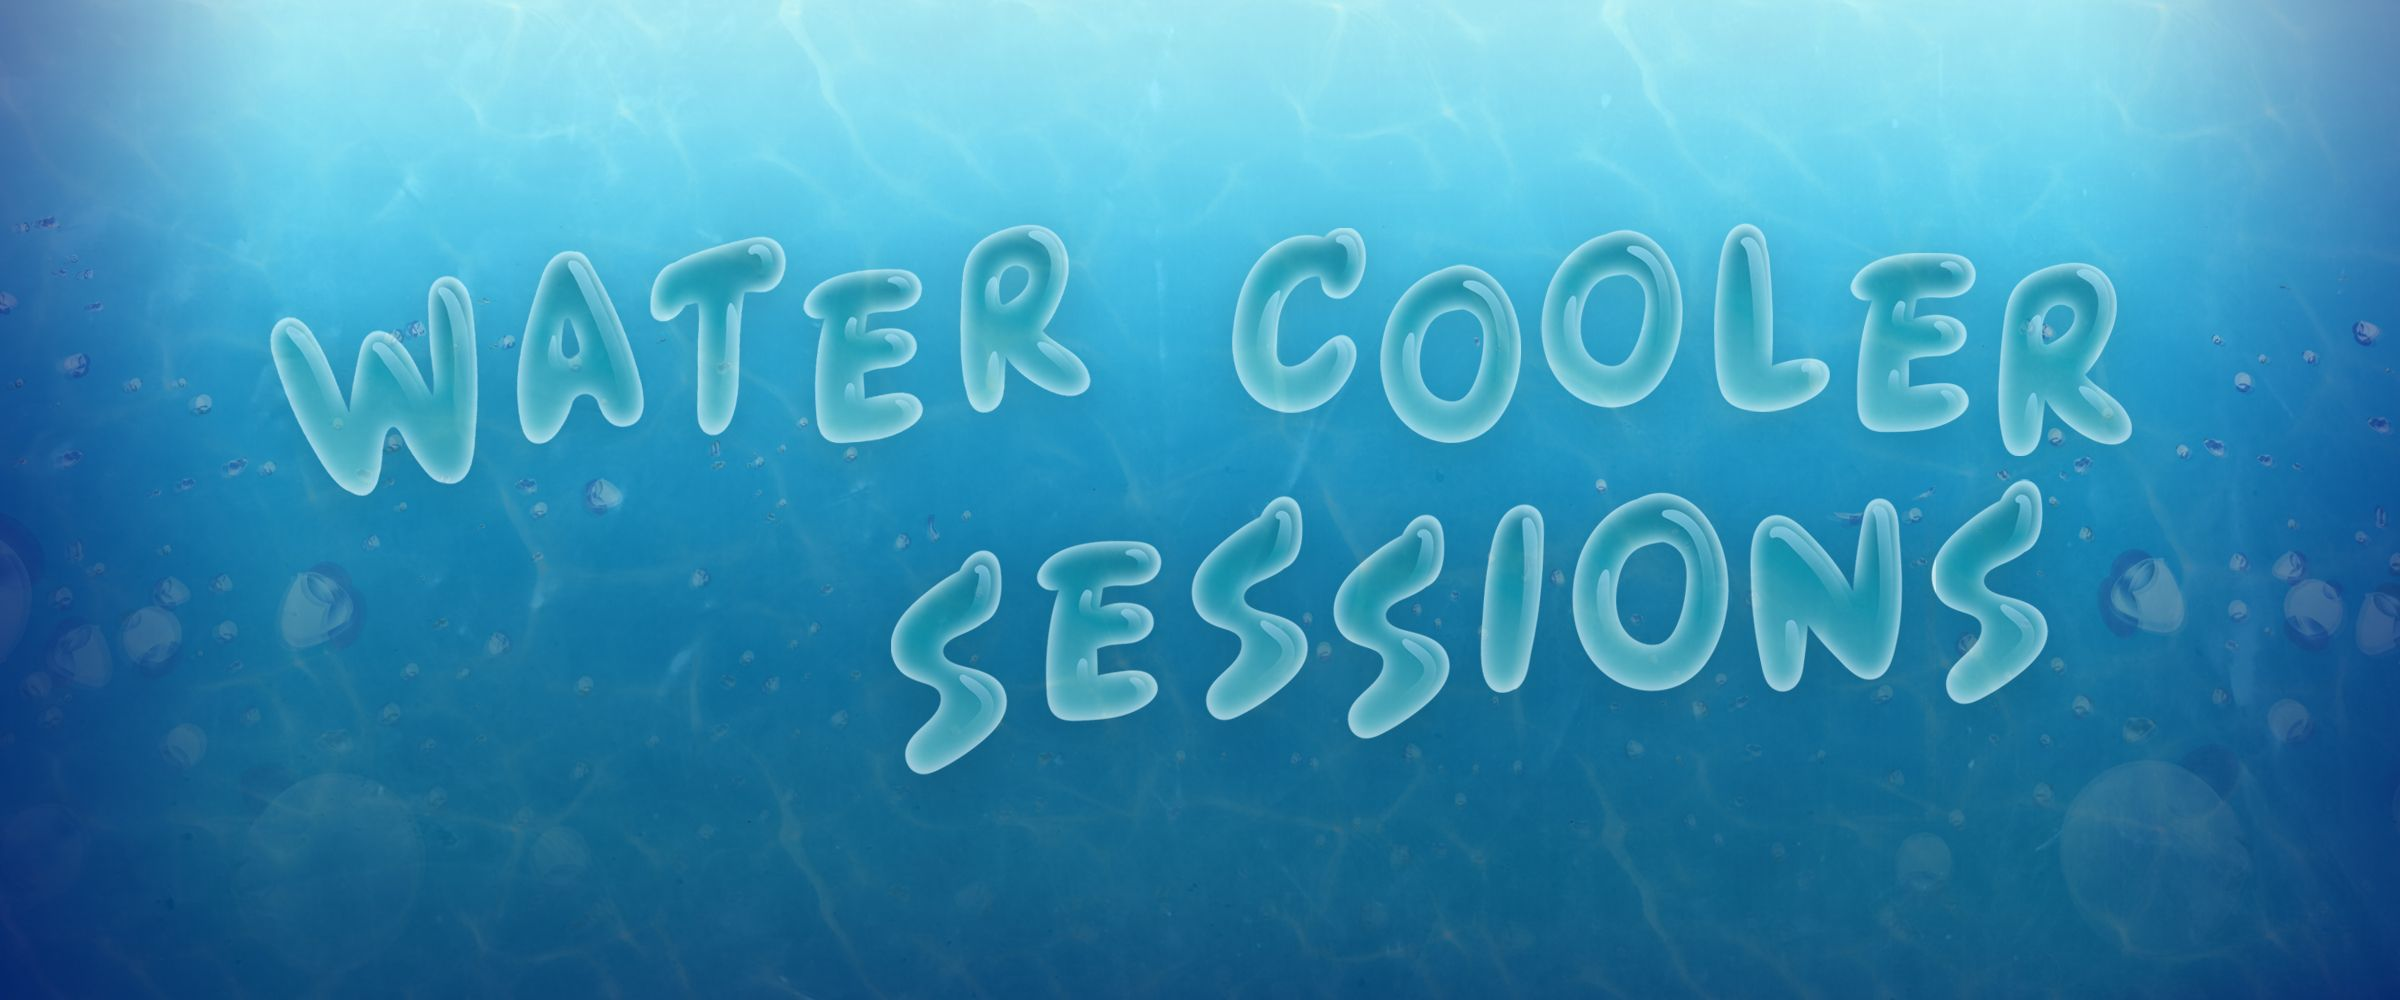 Wednesday Water Cooler Sessions